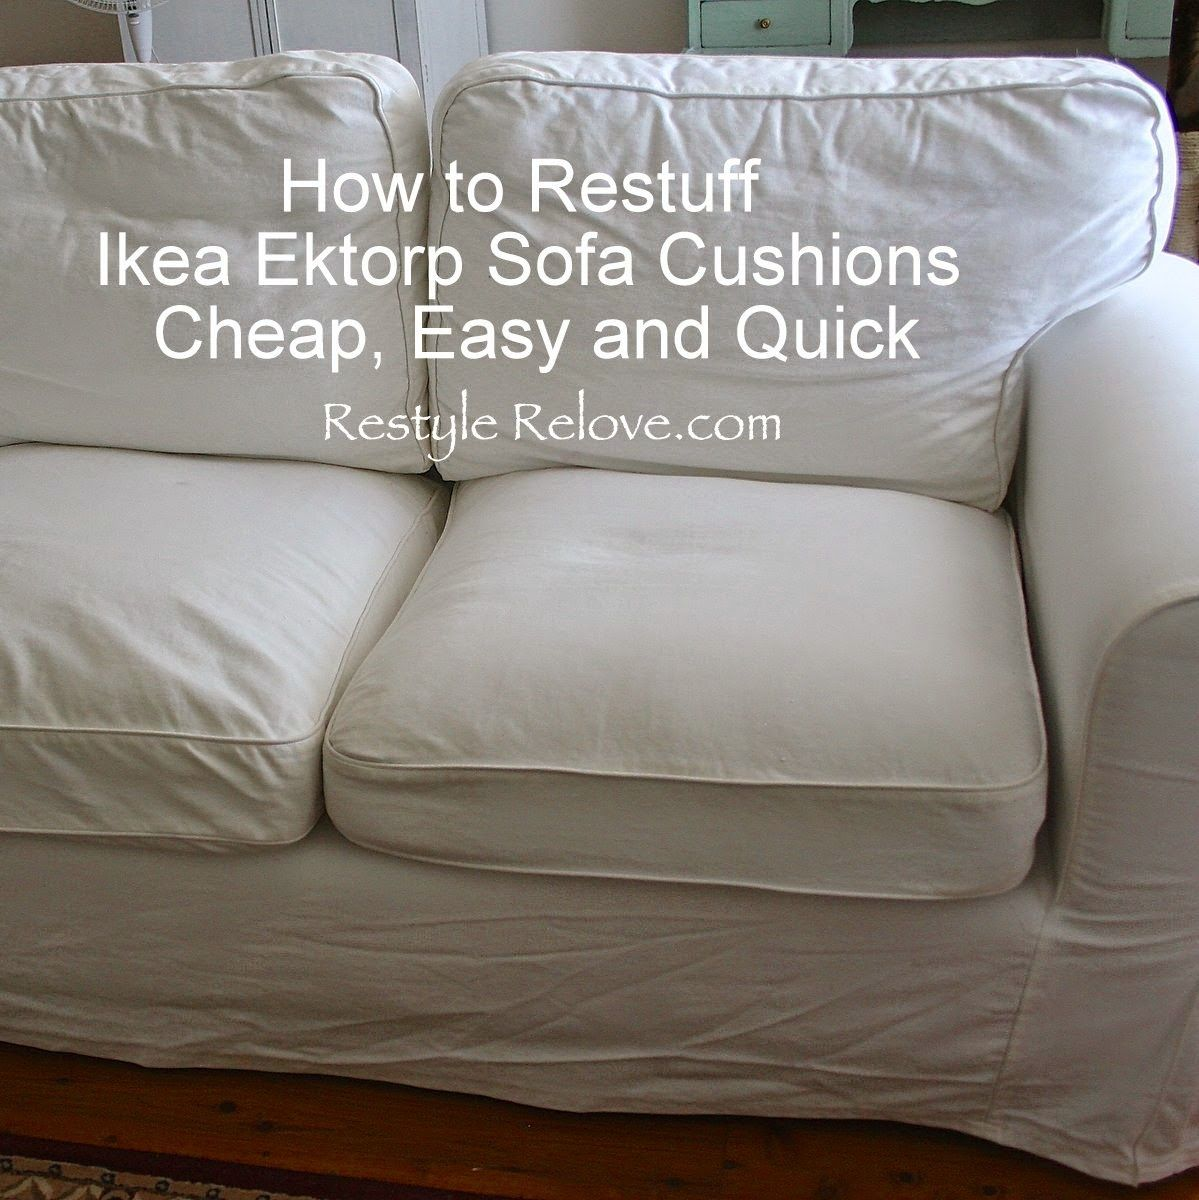 Restyle Relove How To Restuff Ikea Rp Sofa Cushions Easy And Quick